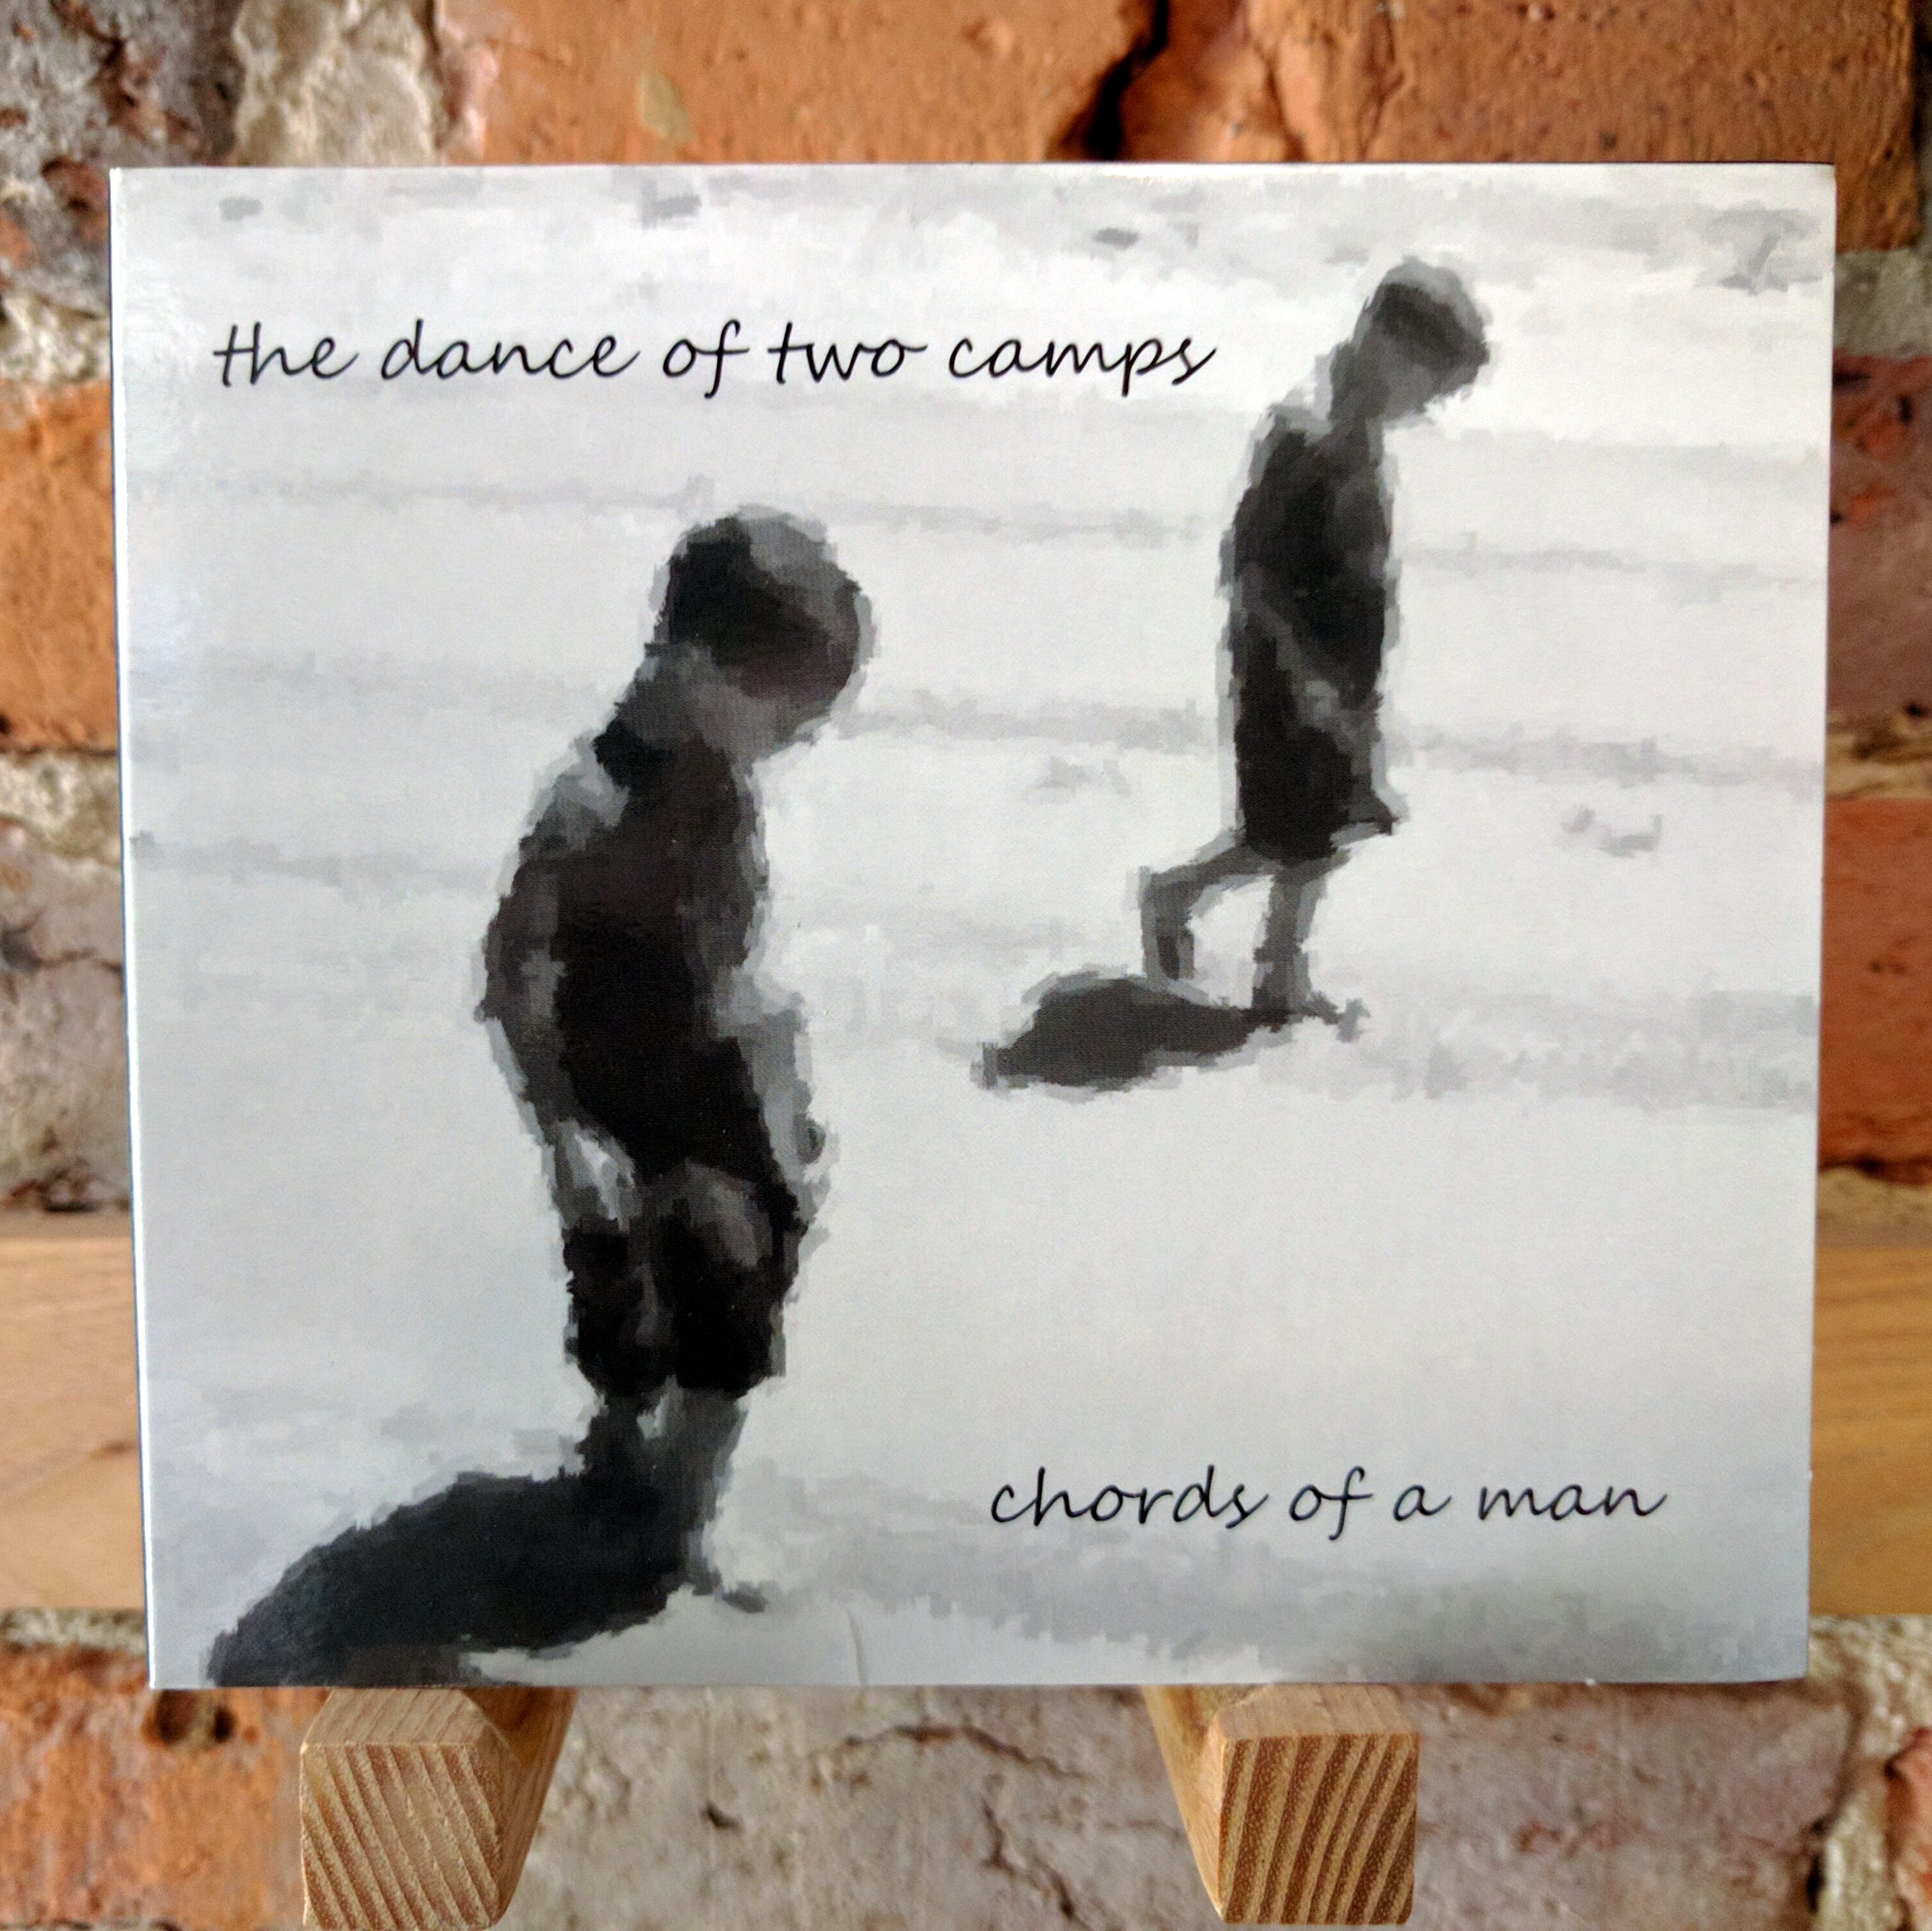 The dance of two camps chords of a man to purchase the dance of two camps physical cd for 10 plus shipping click the add to cart button below physical cd purchases include instant digital hexwebz Gallery